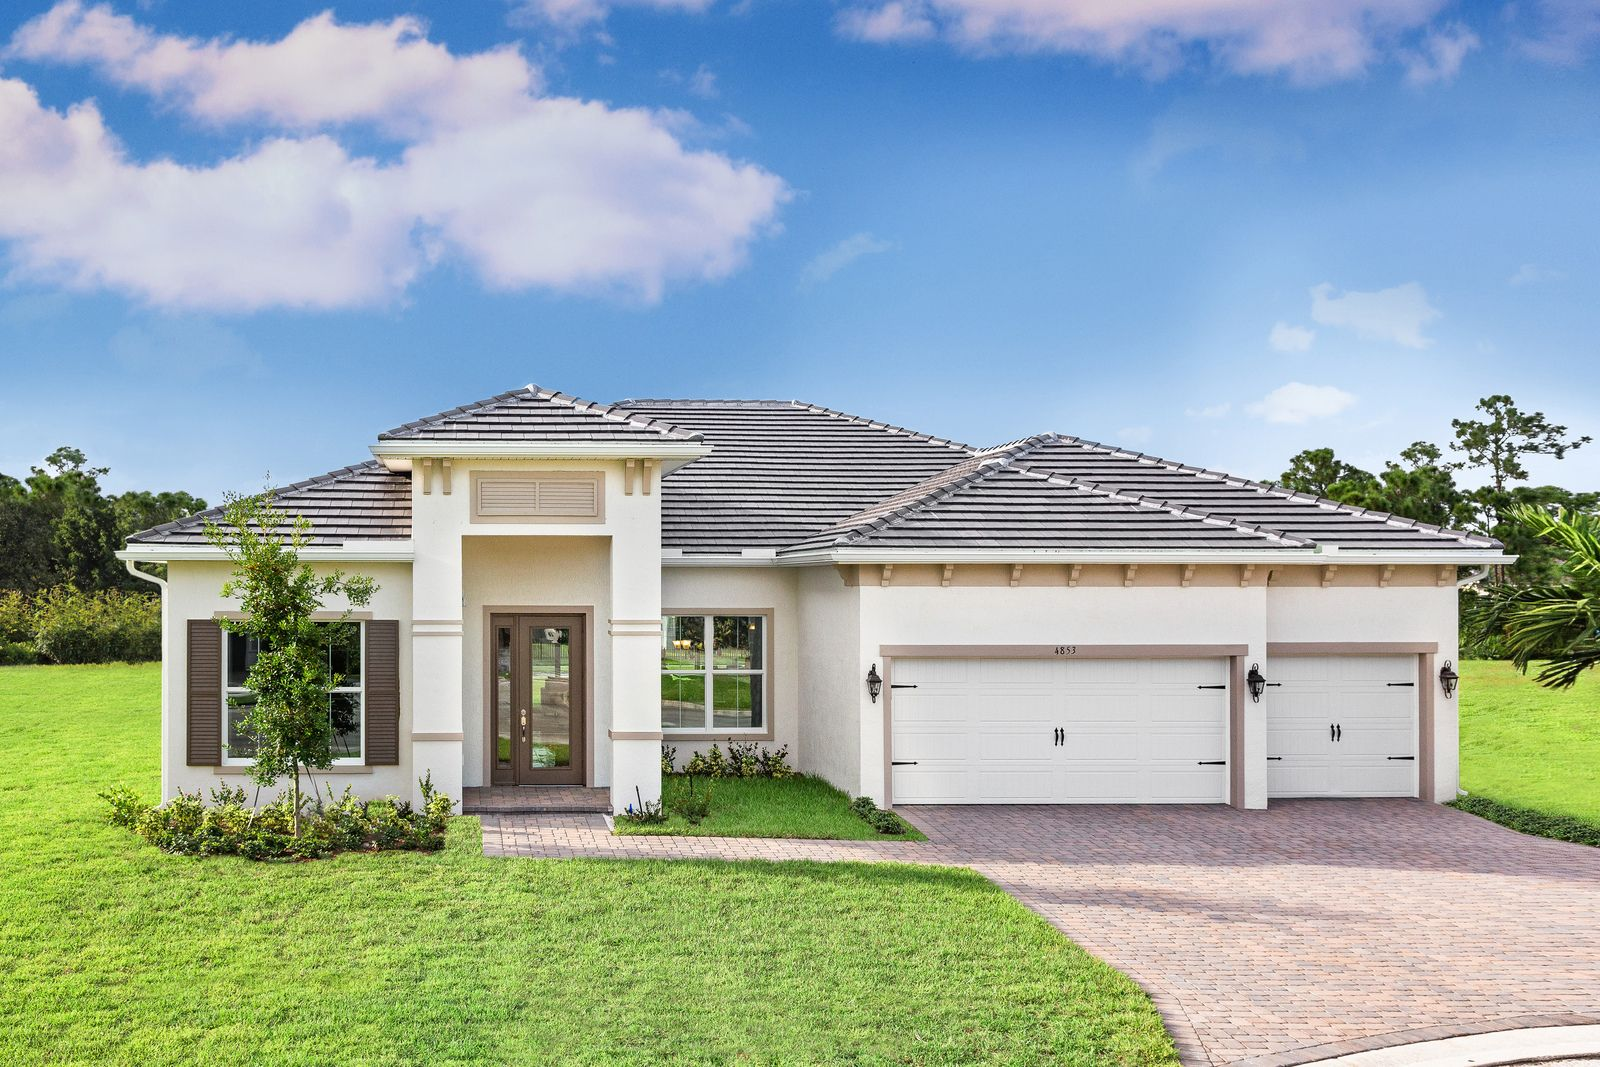 Come explore beautiful Banyan Bay in Stuart, FL By Appointment Only:Come explore beautiful Banyan Bay in Stuart, FL and fall in love with our captivating sunsets, natural preserve and stunning water views.By appointment only, come tour our gorgeous model homes!